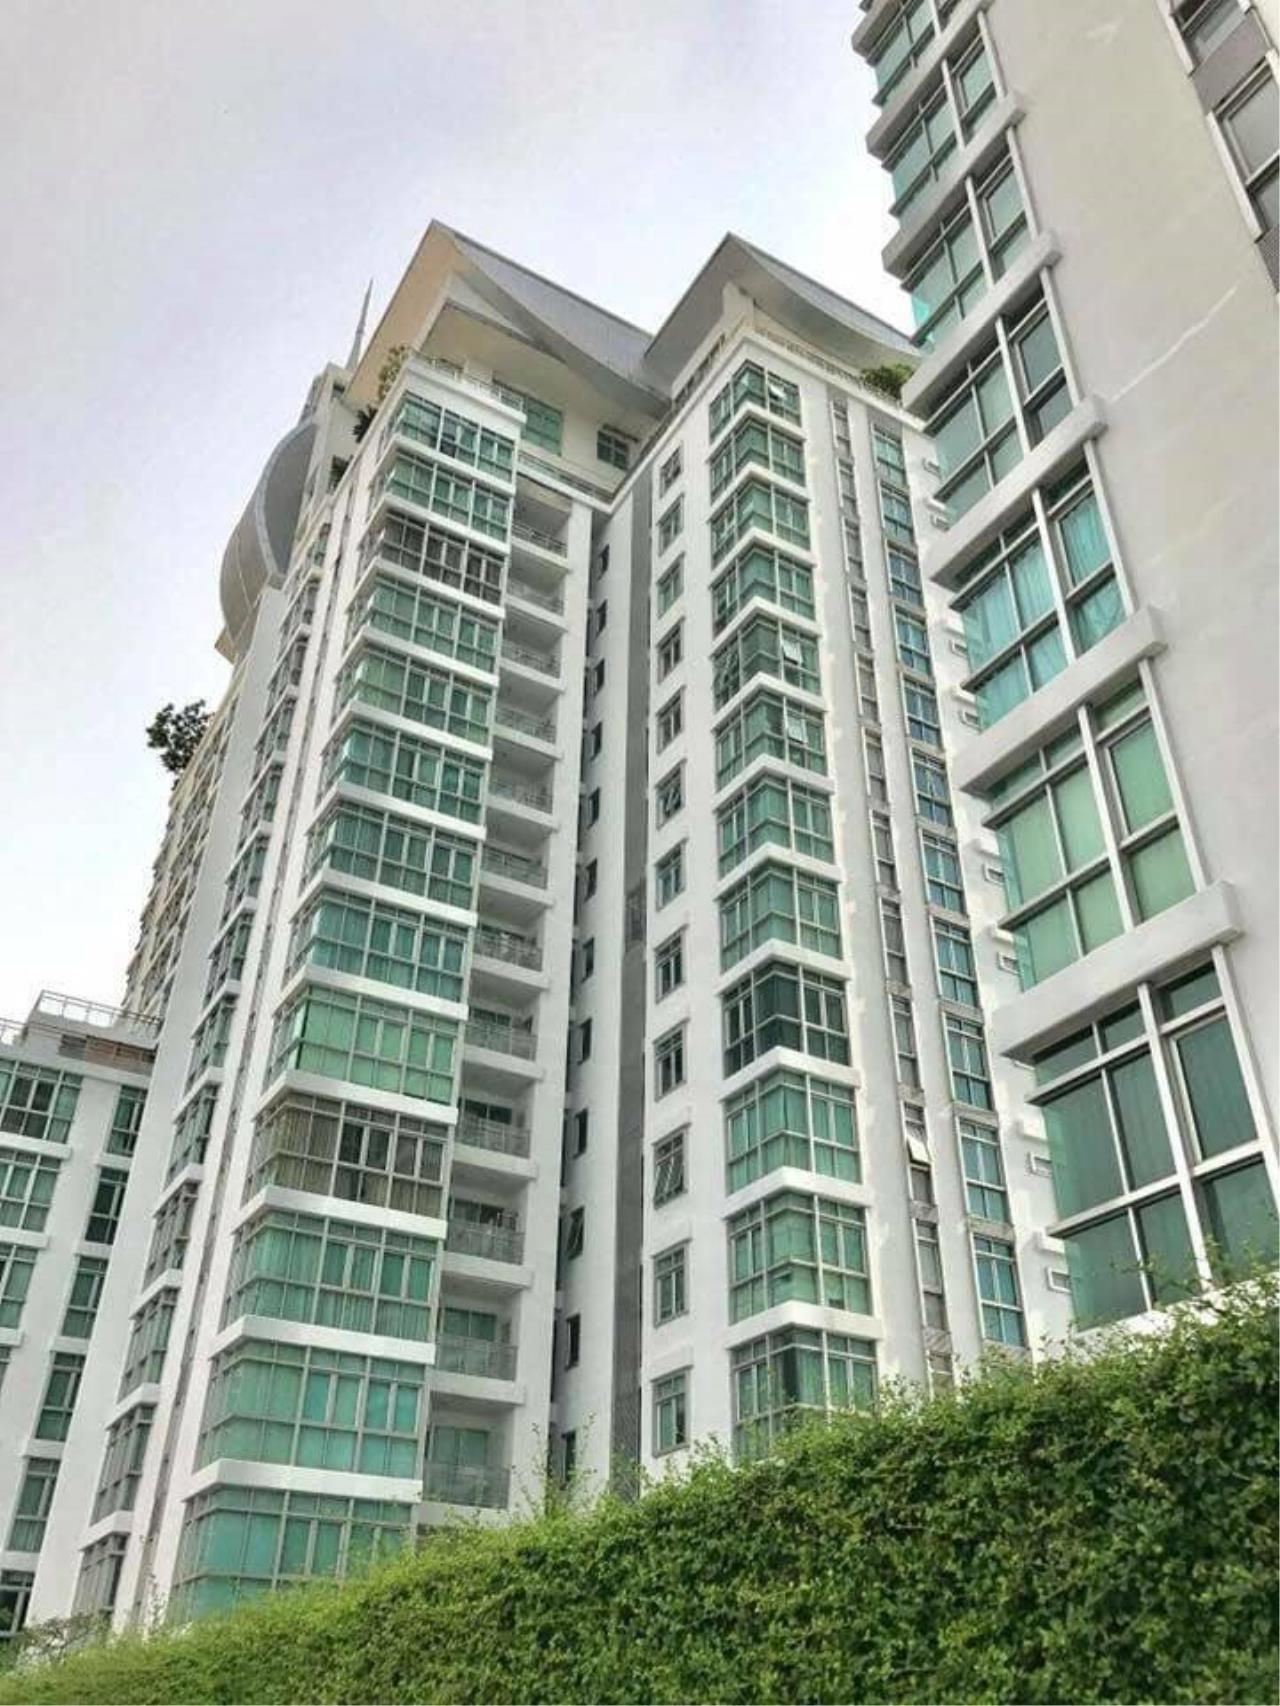 Property Thai Sale Agency's NusaSIRI Grand Condo 17